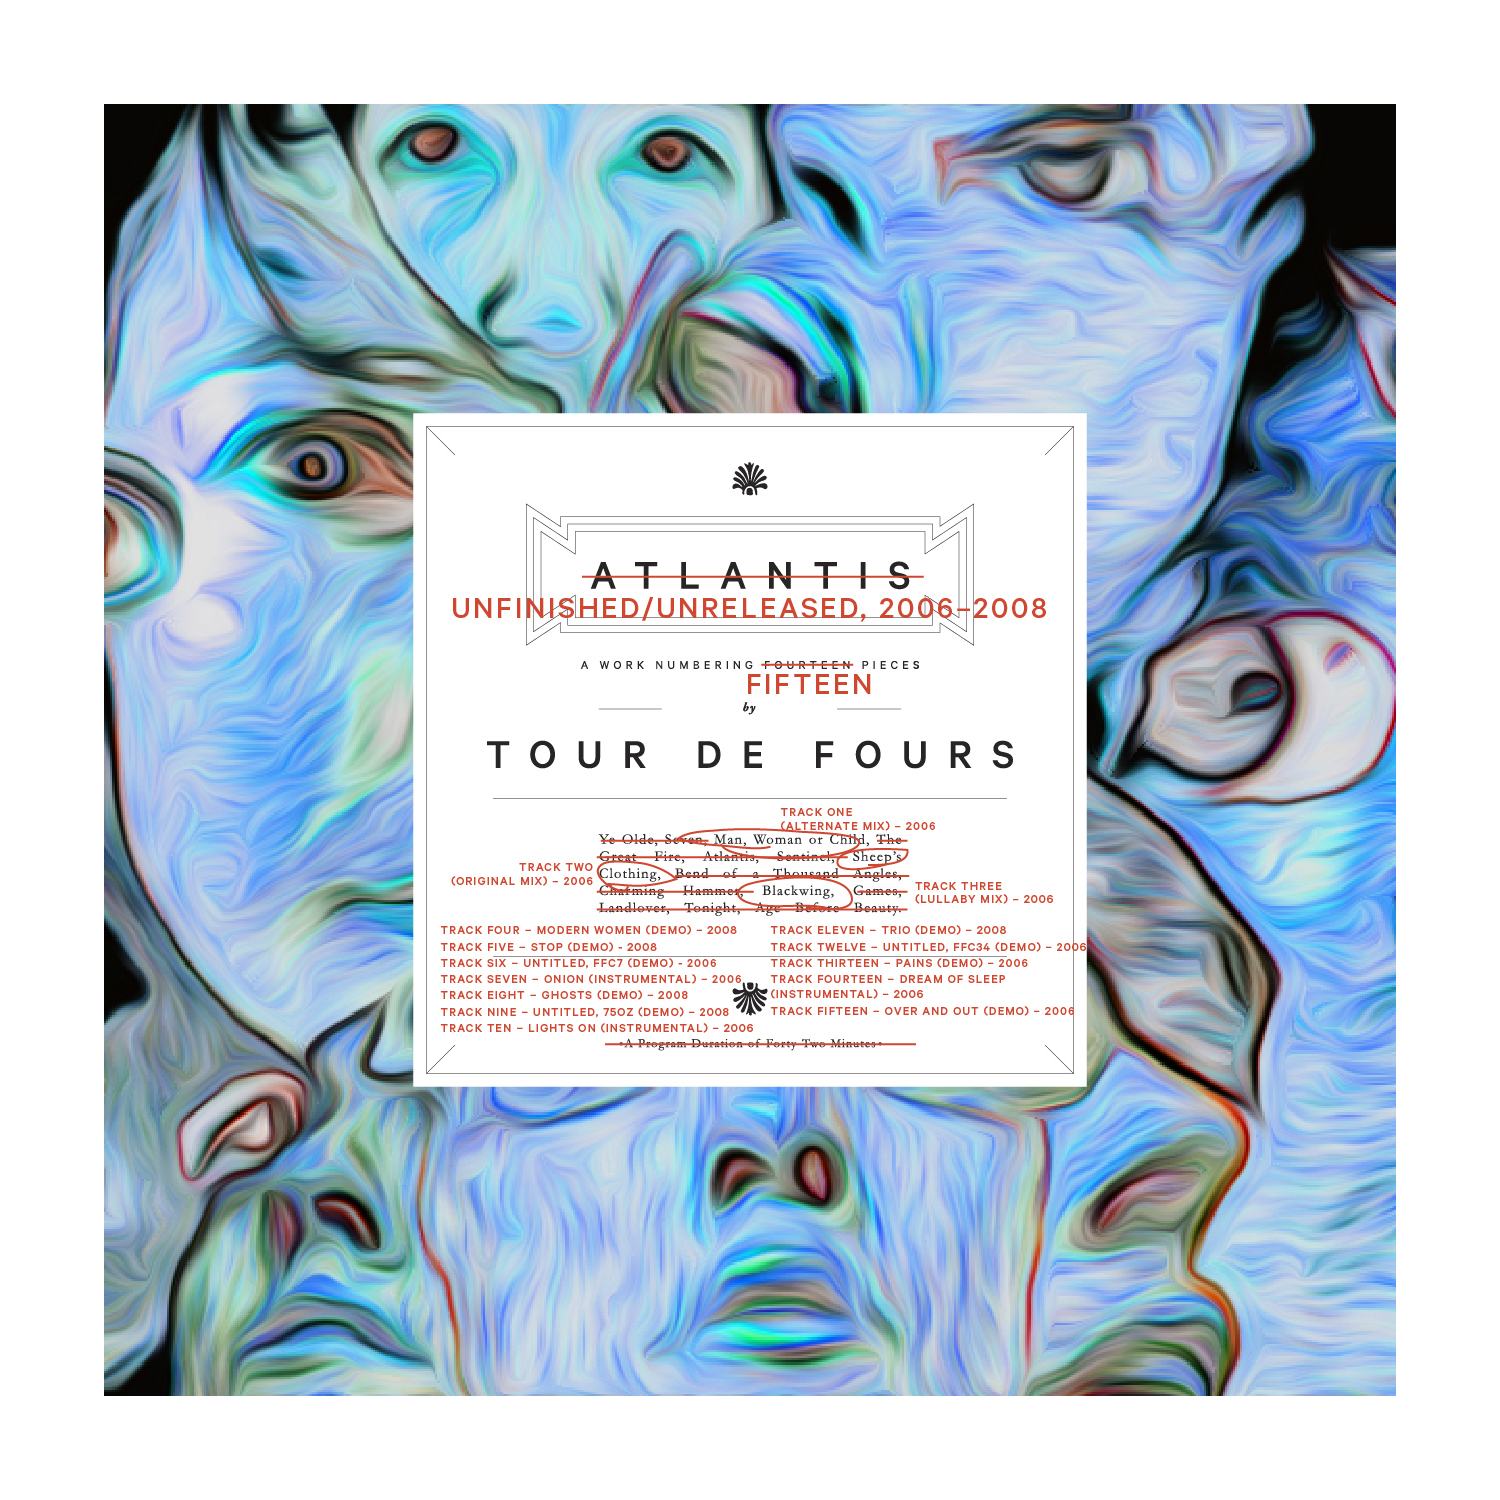 Tour-de-Fours-Chris-von-Szombathy-Unfinished-Unreleased-LP